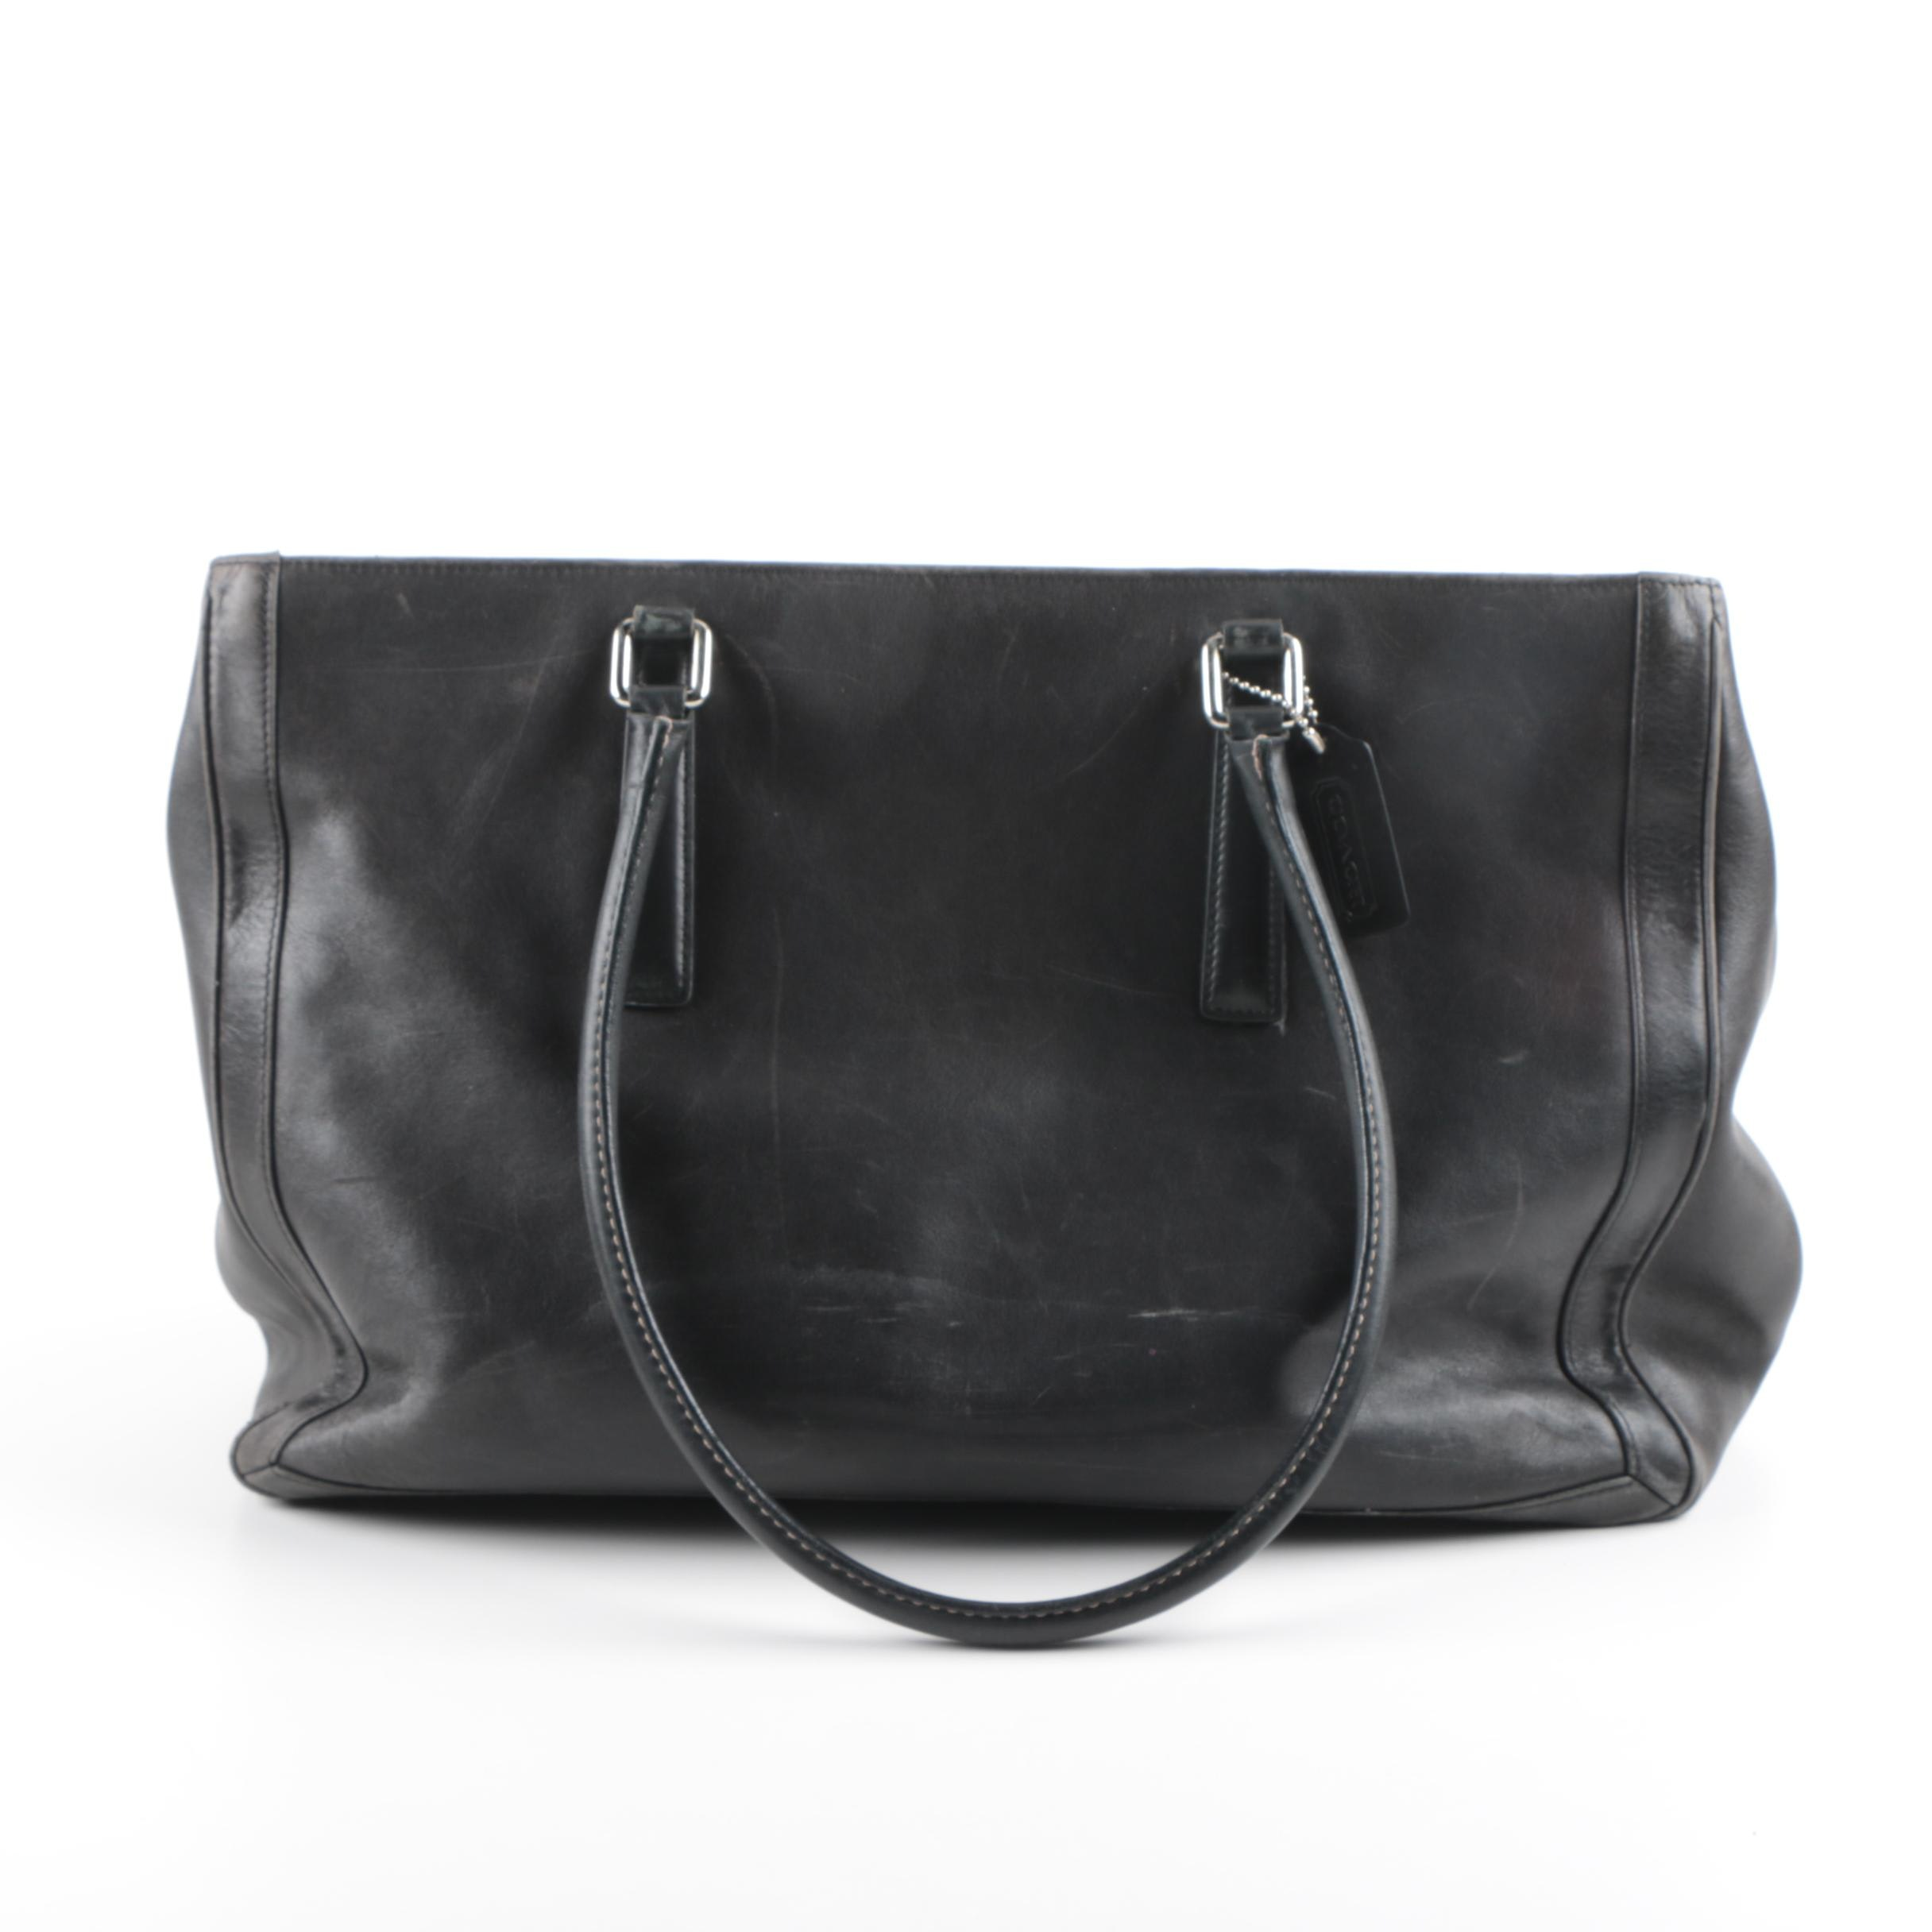 Vintage Coach Black Leather Carryall Bag